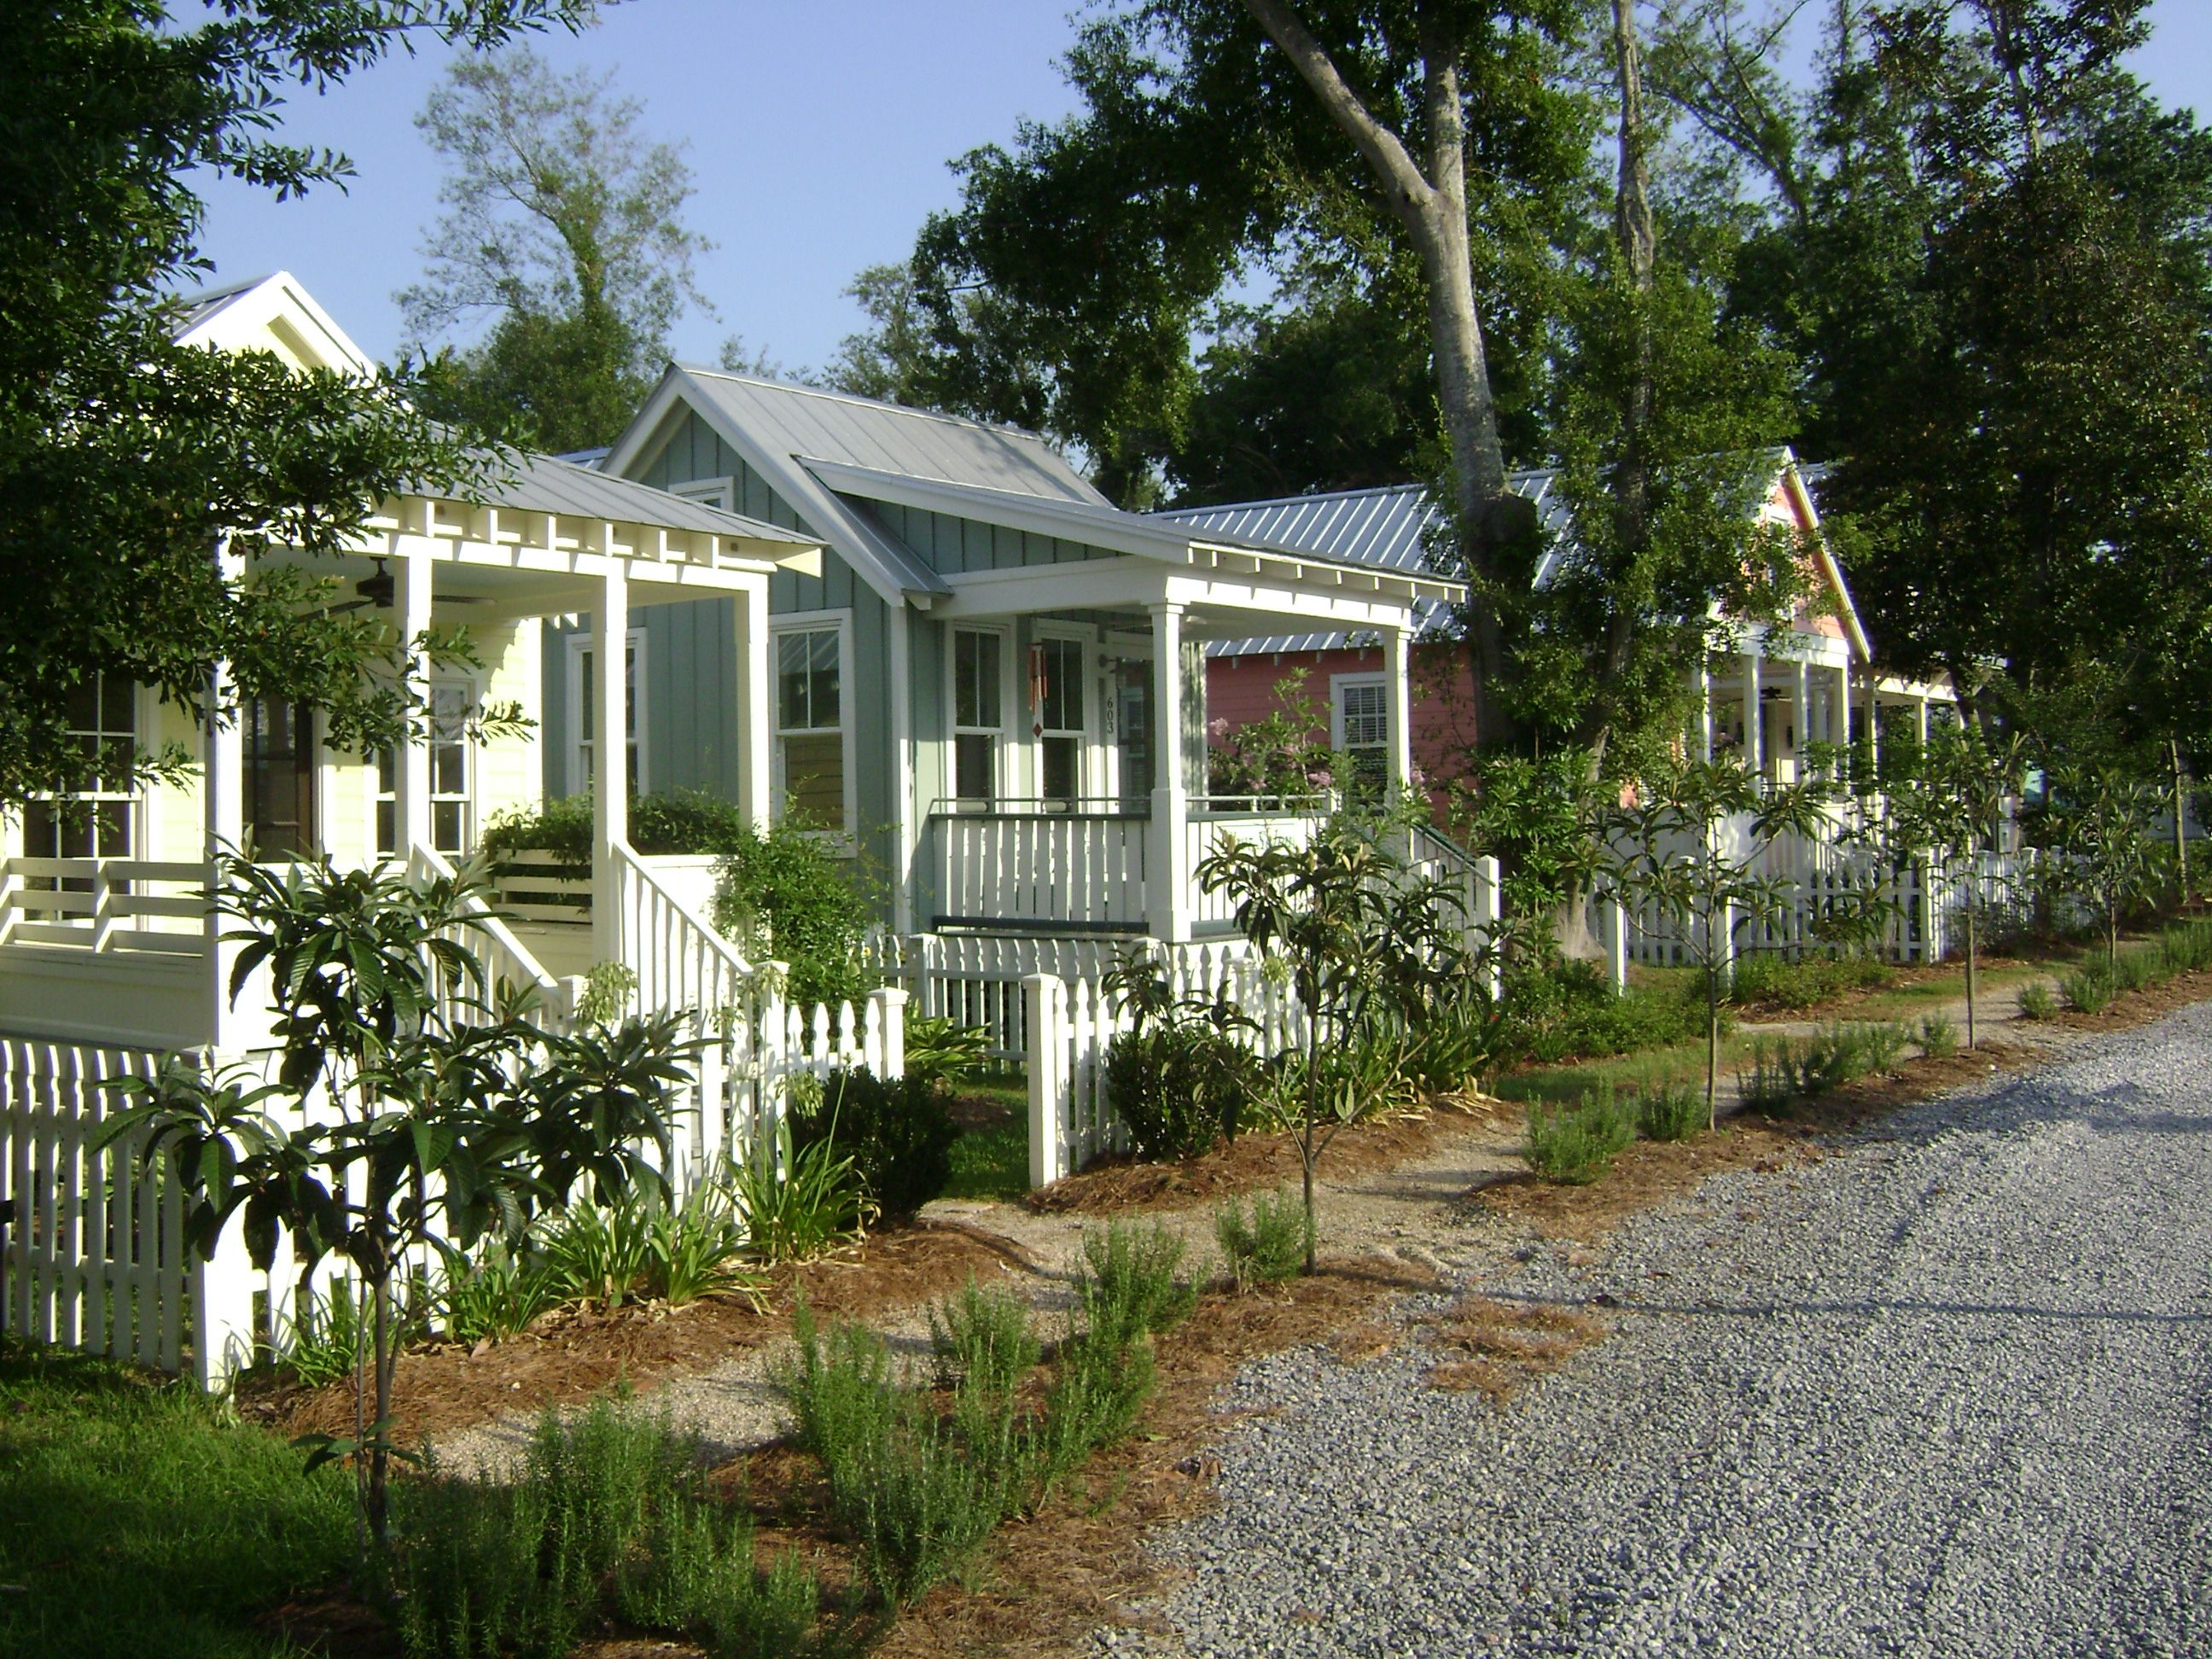 Tiny houses on the beach in florida - Cabin